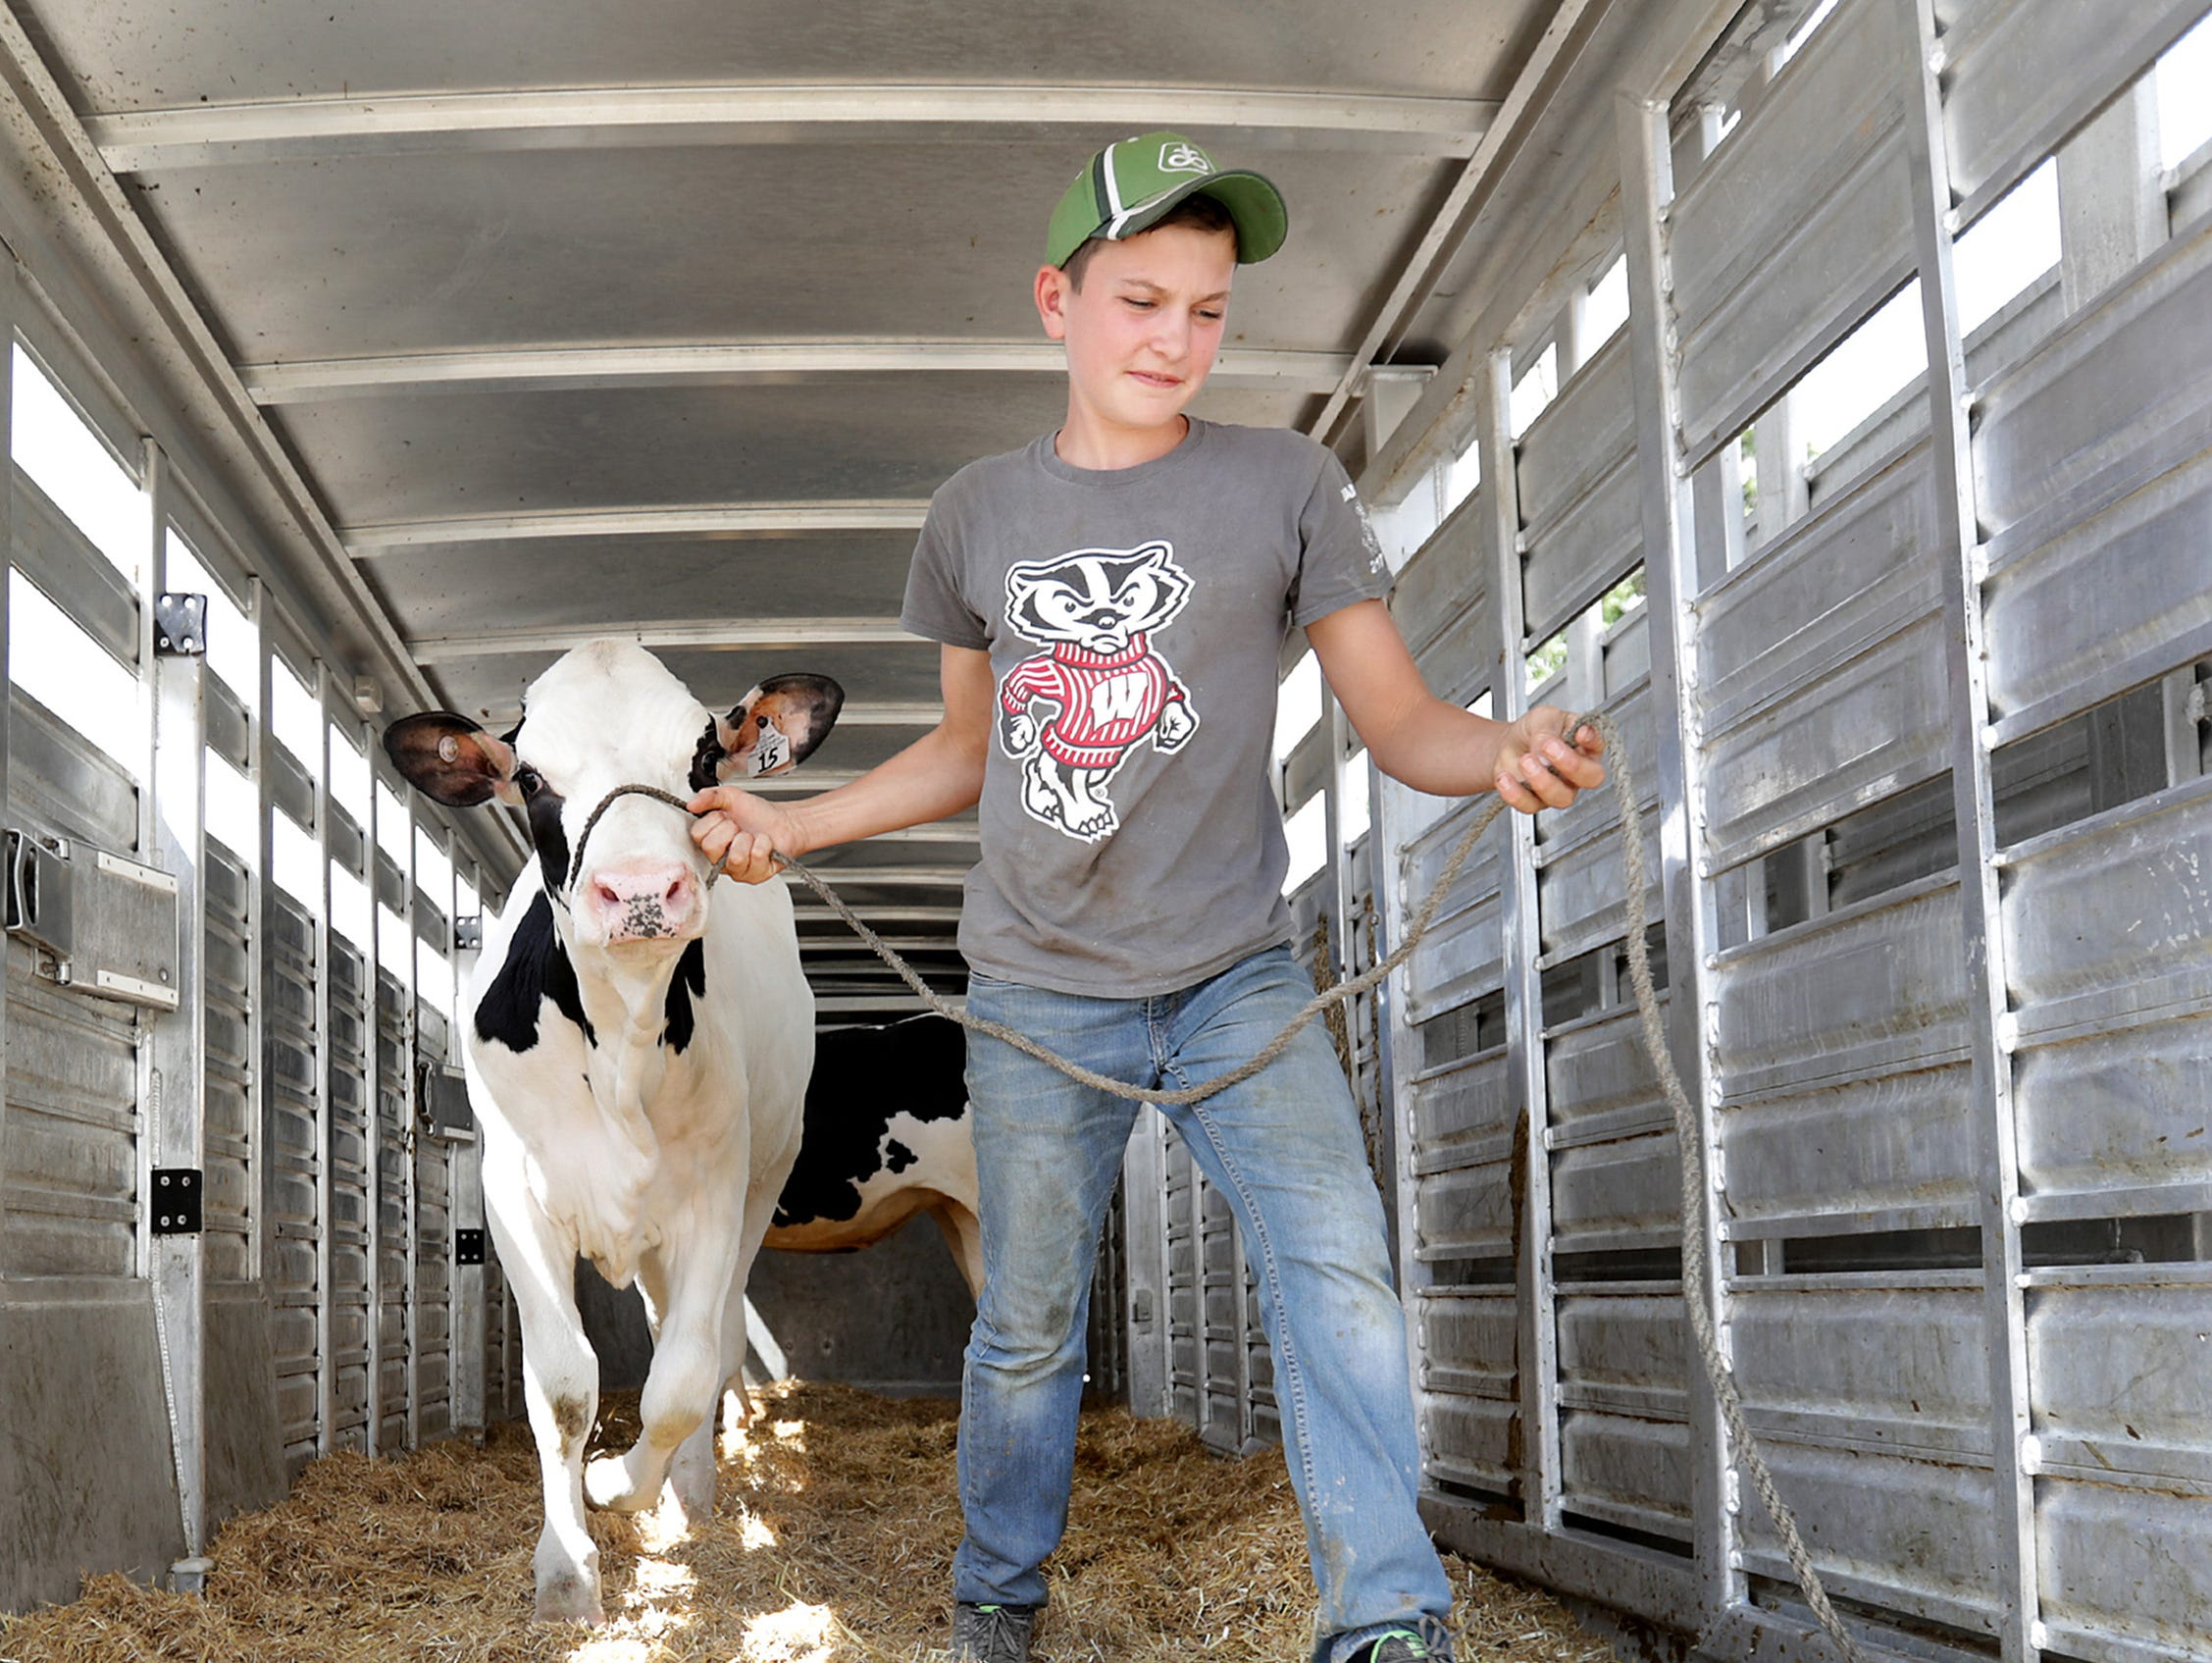 Joe Schuh, Freedom, helps unload a trailer during the Outagamie County Fair on Wednesday, July 25, 2018 in Seymour, Wis. Wm. Glasheen/USA TODAY NETWORK-Wisconsin